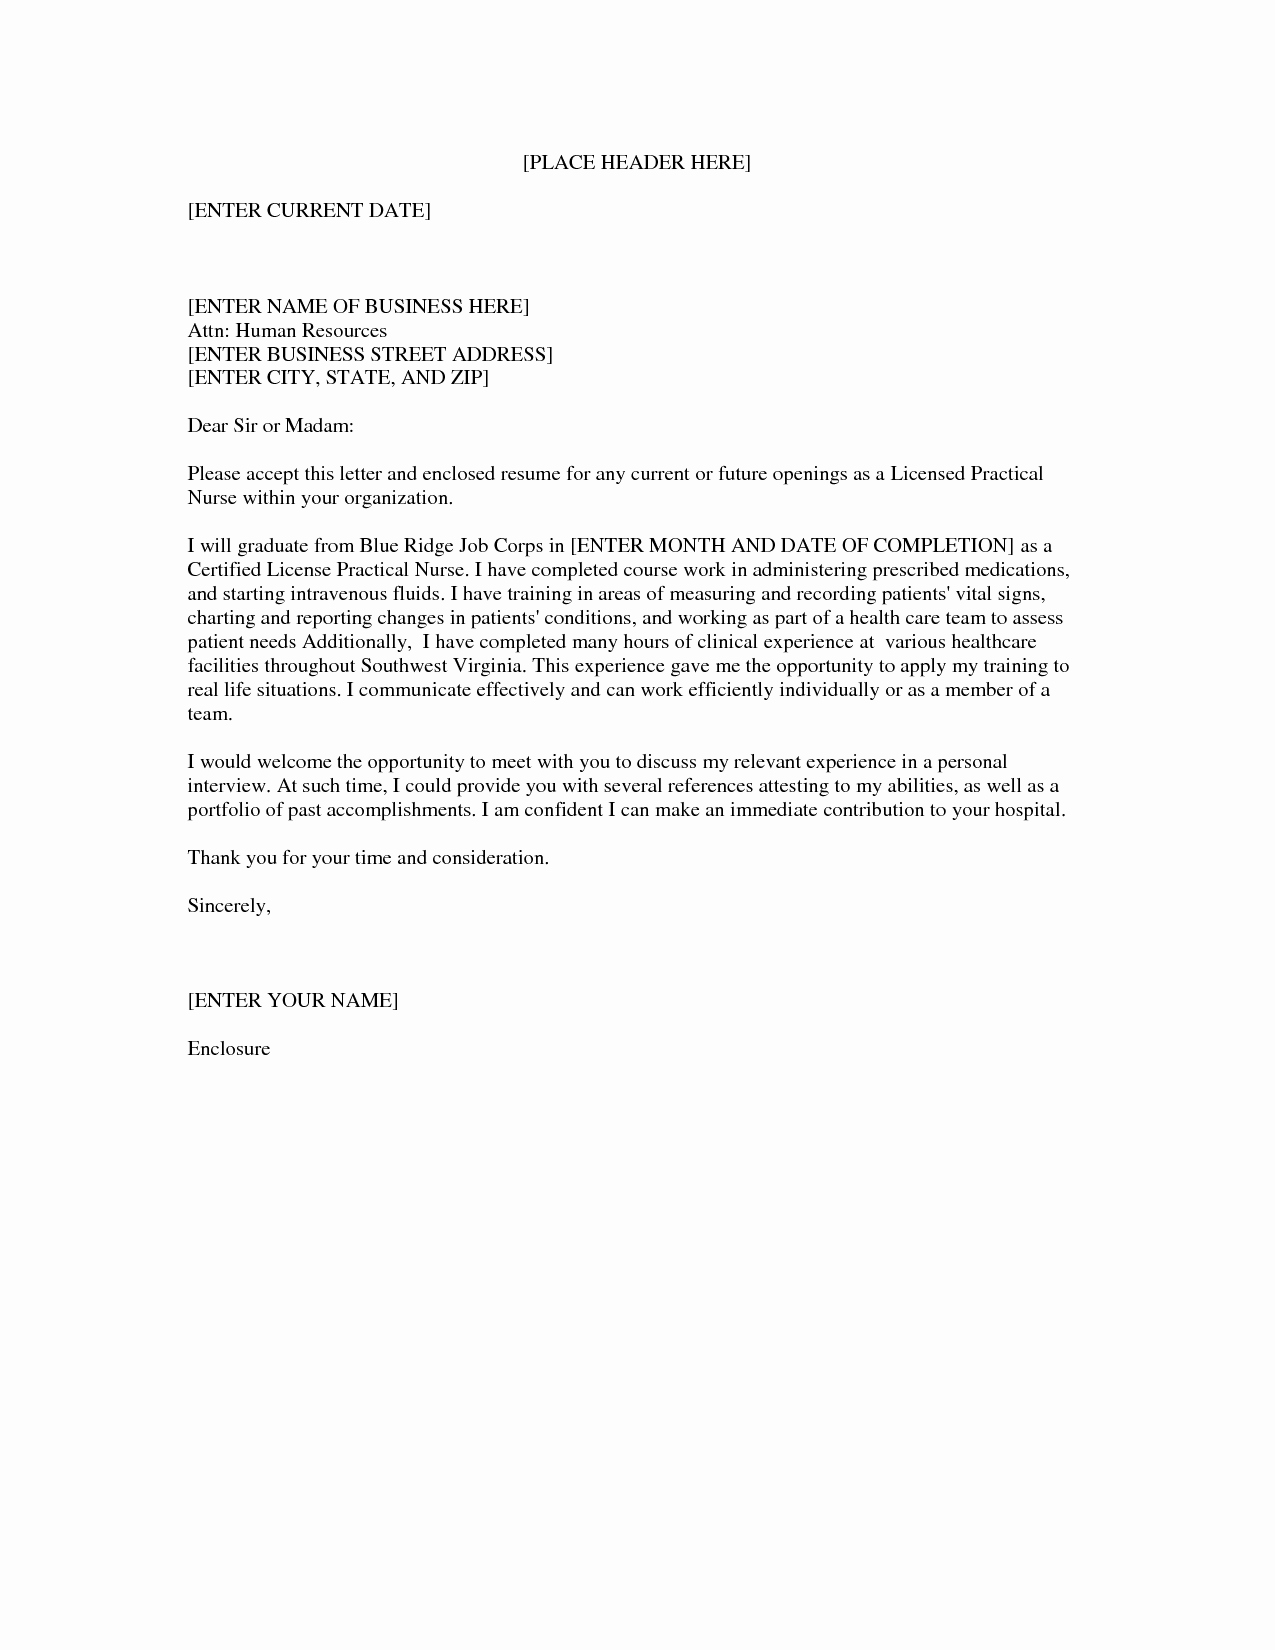 Cover Letter for Nursing Student Luxury Lpn Nursing Cover Letter Sample